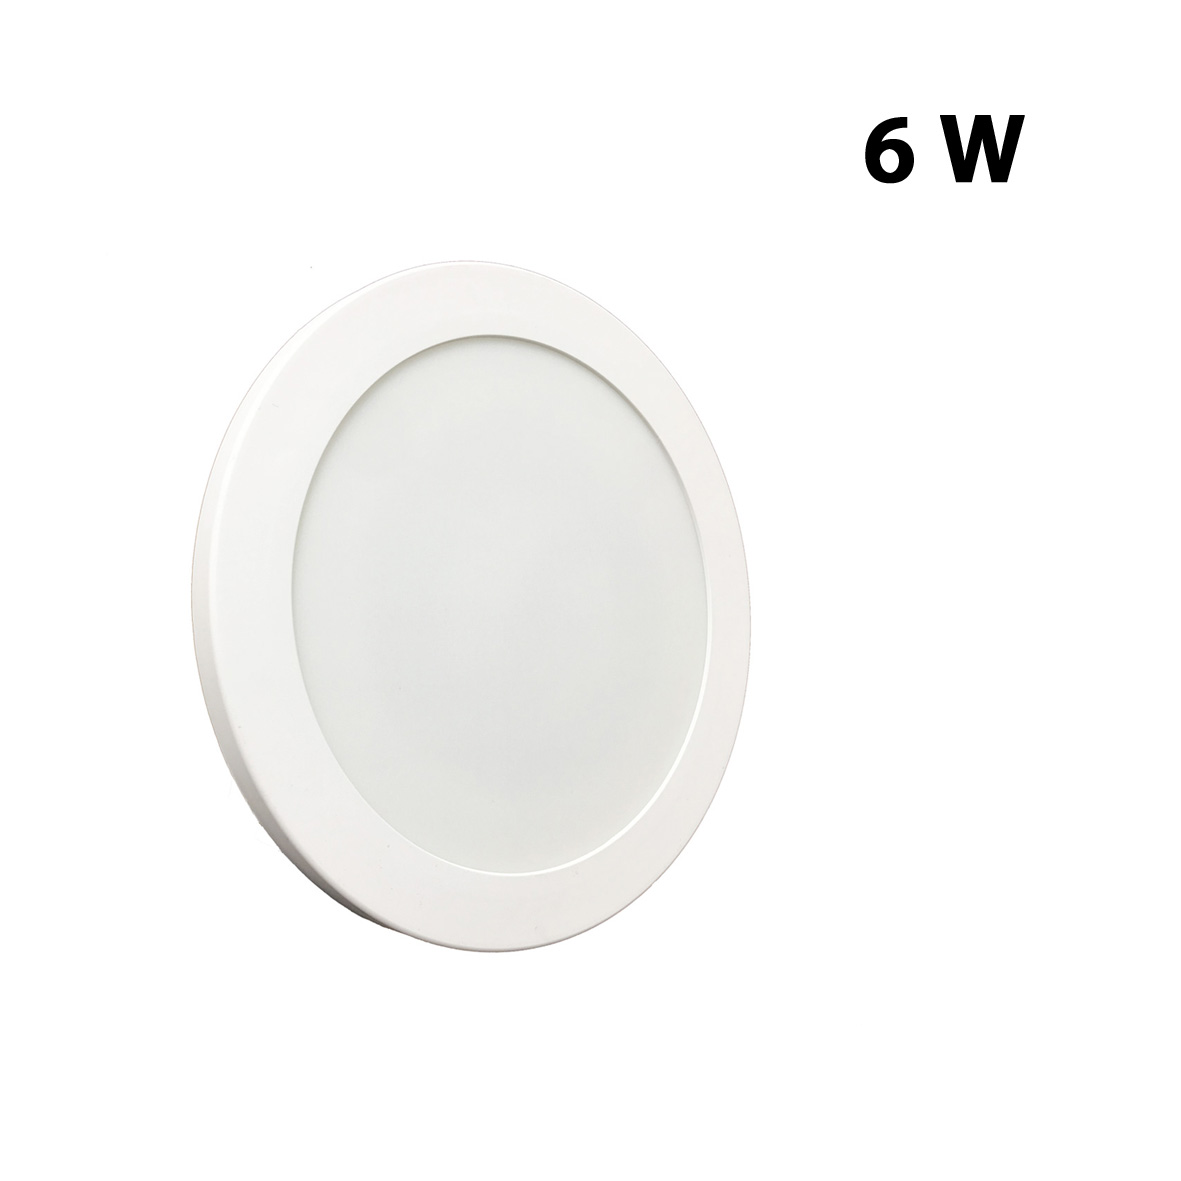 Plafonnier applique LED 6w slim diamètre du disque de 123 mm mur, plafond, LED